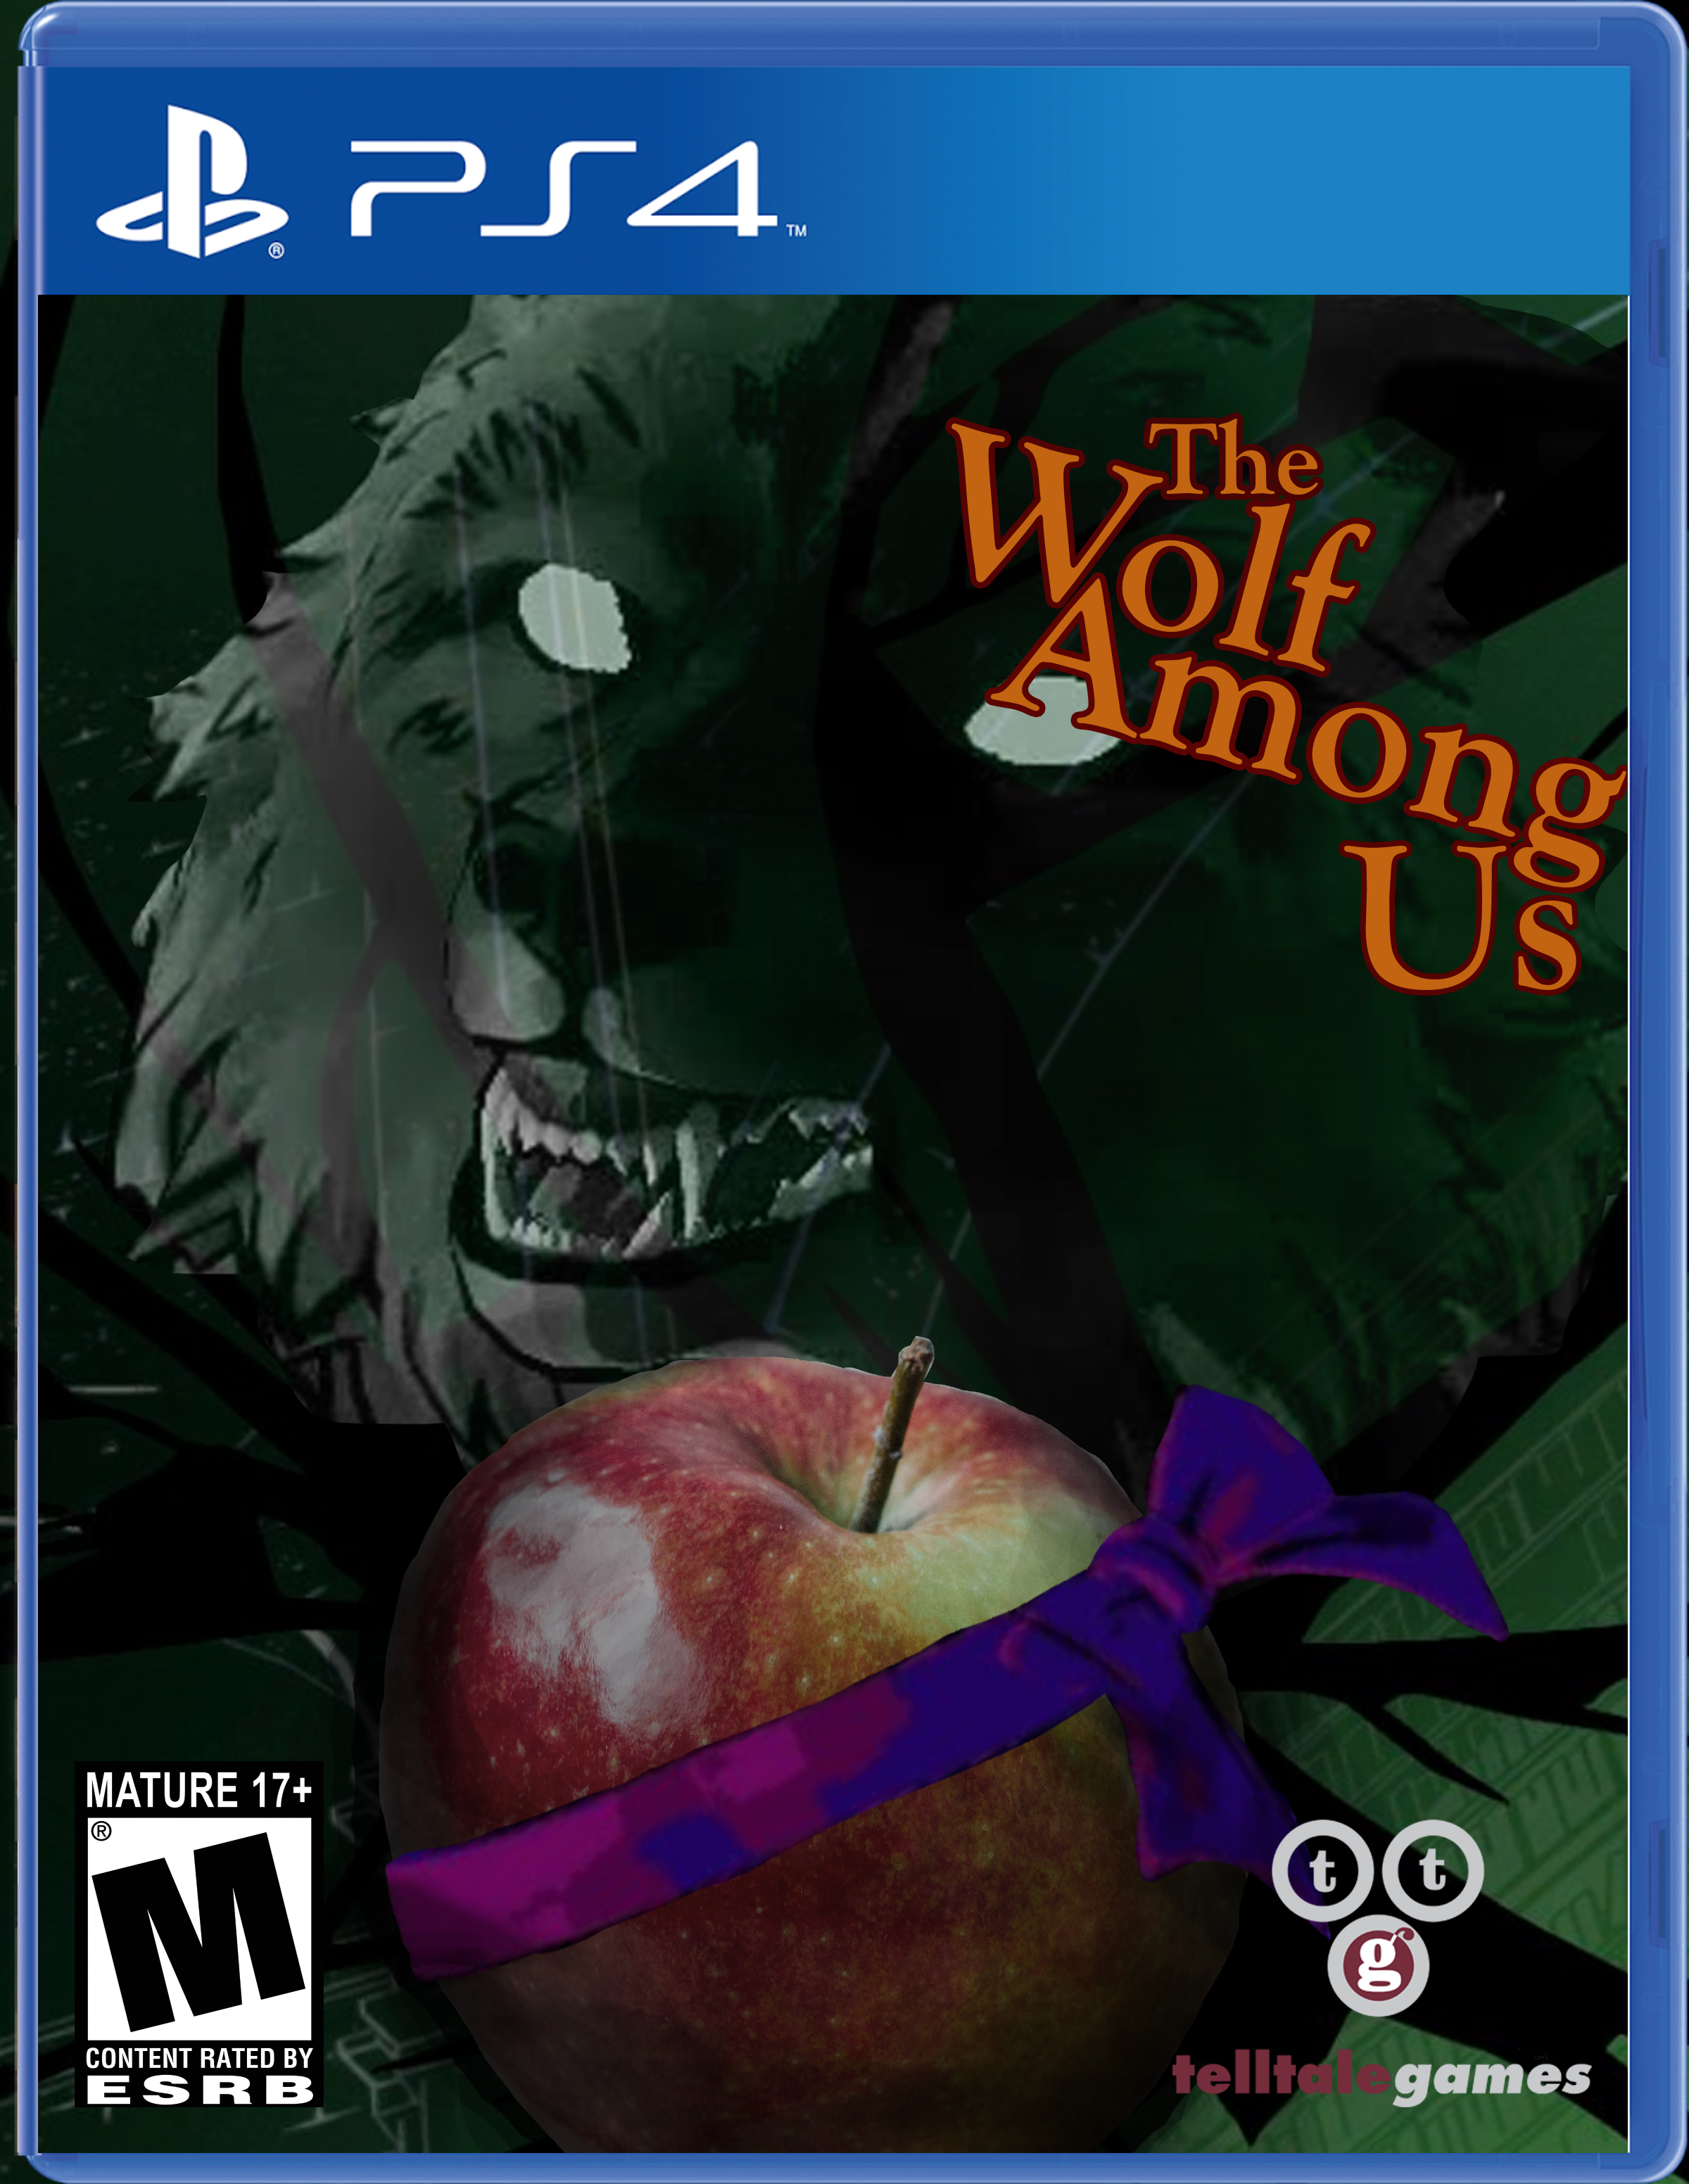 game cover2.jpg